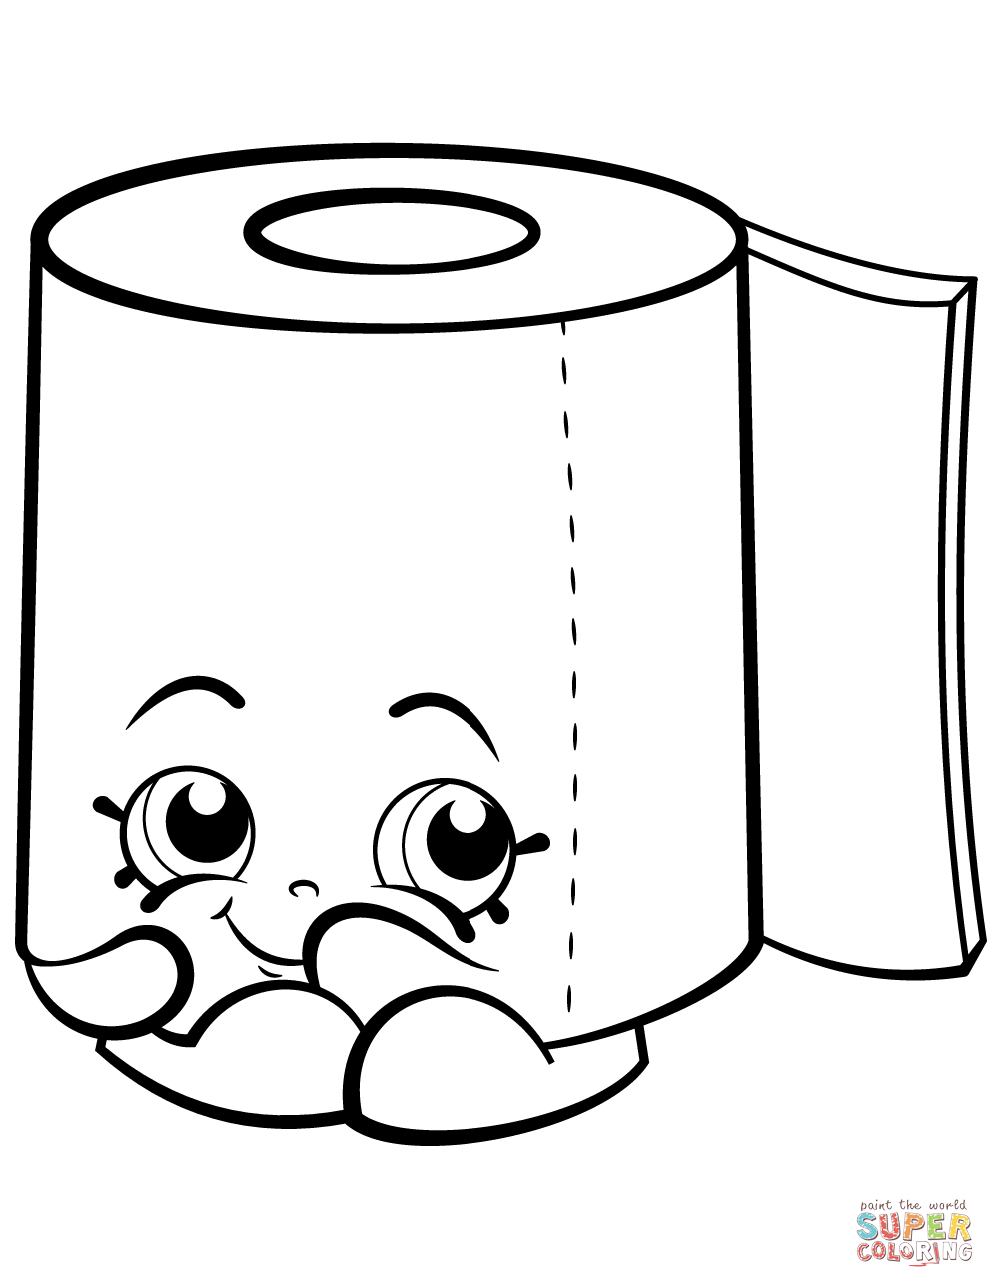 Sweat Leafy Roll of Toilet Paper Shopkin coloring page